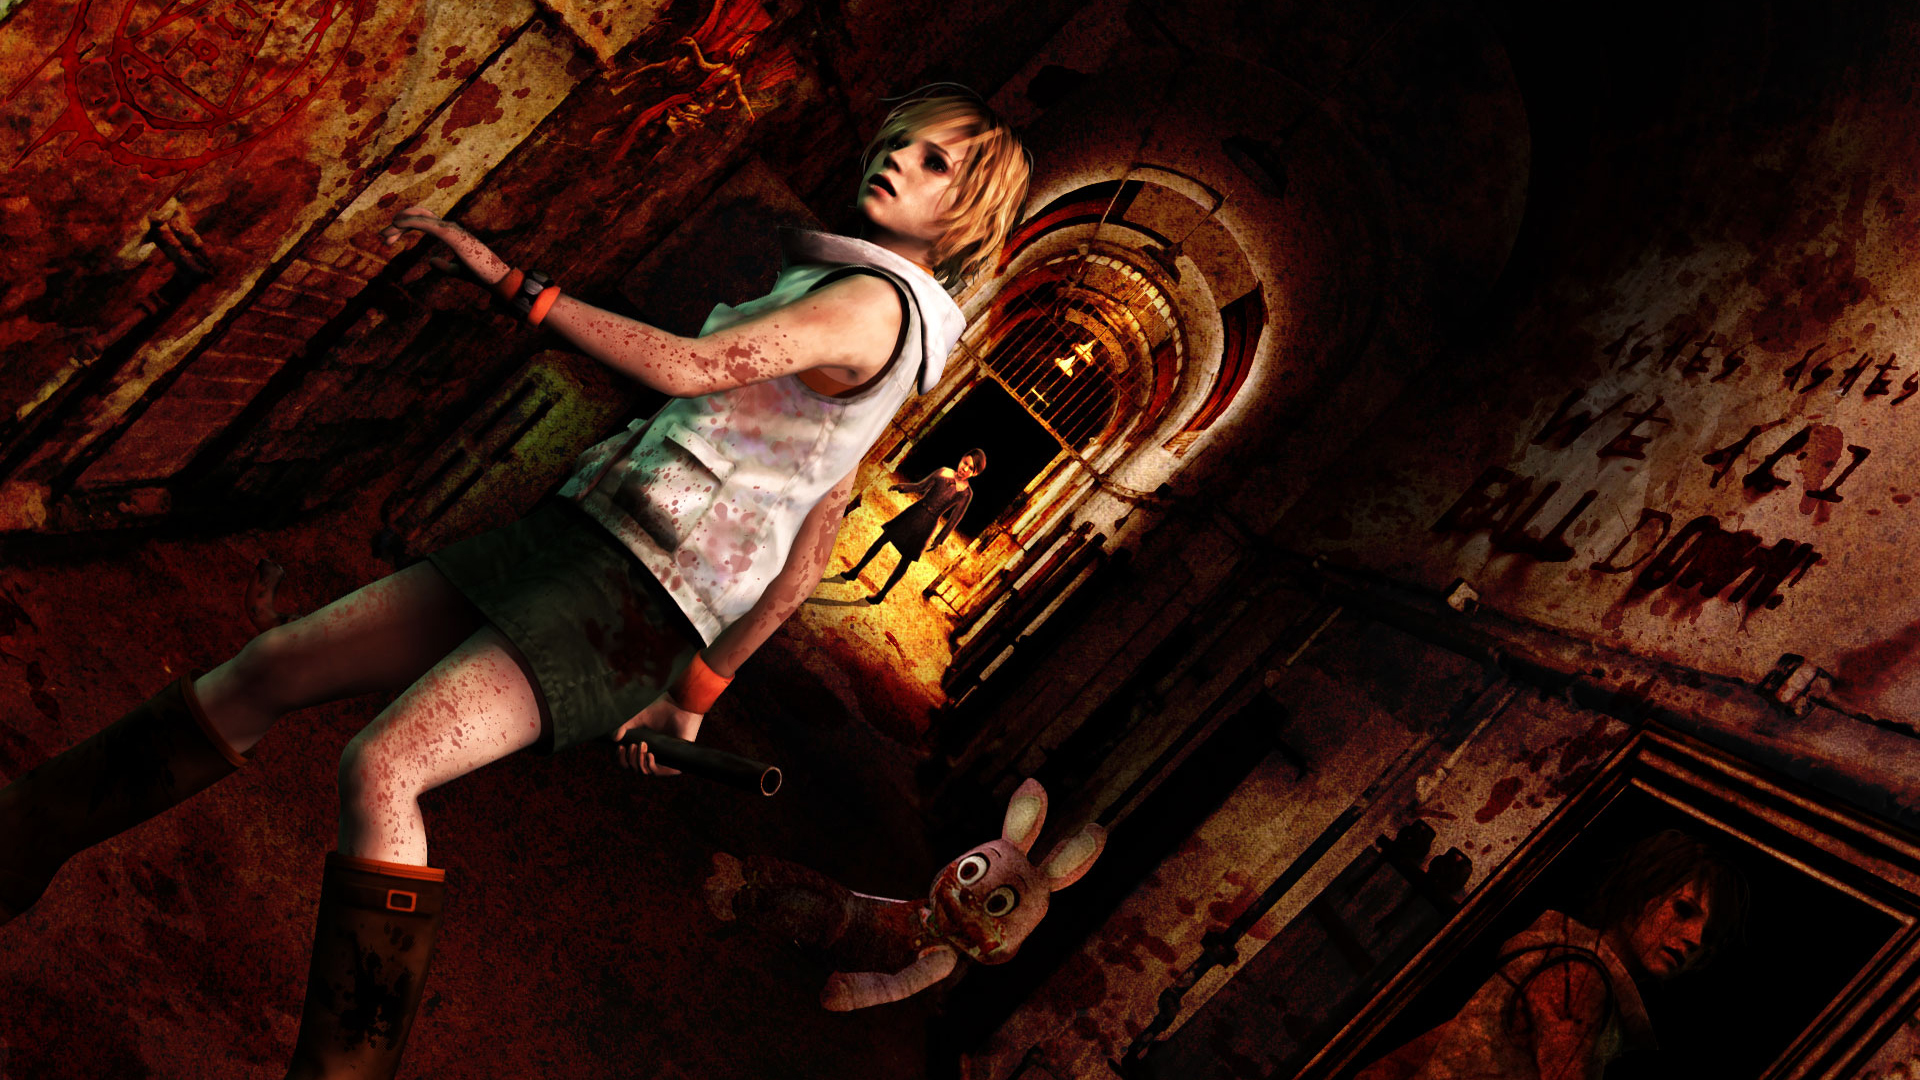 1920x1080 - Silent Hill HD Wallpapers 31